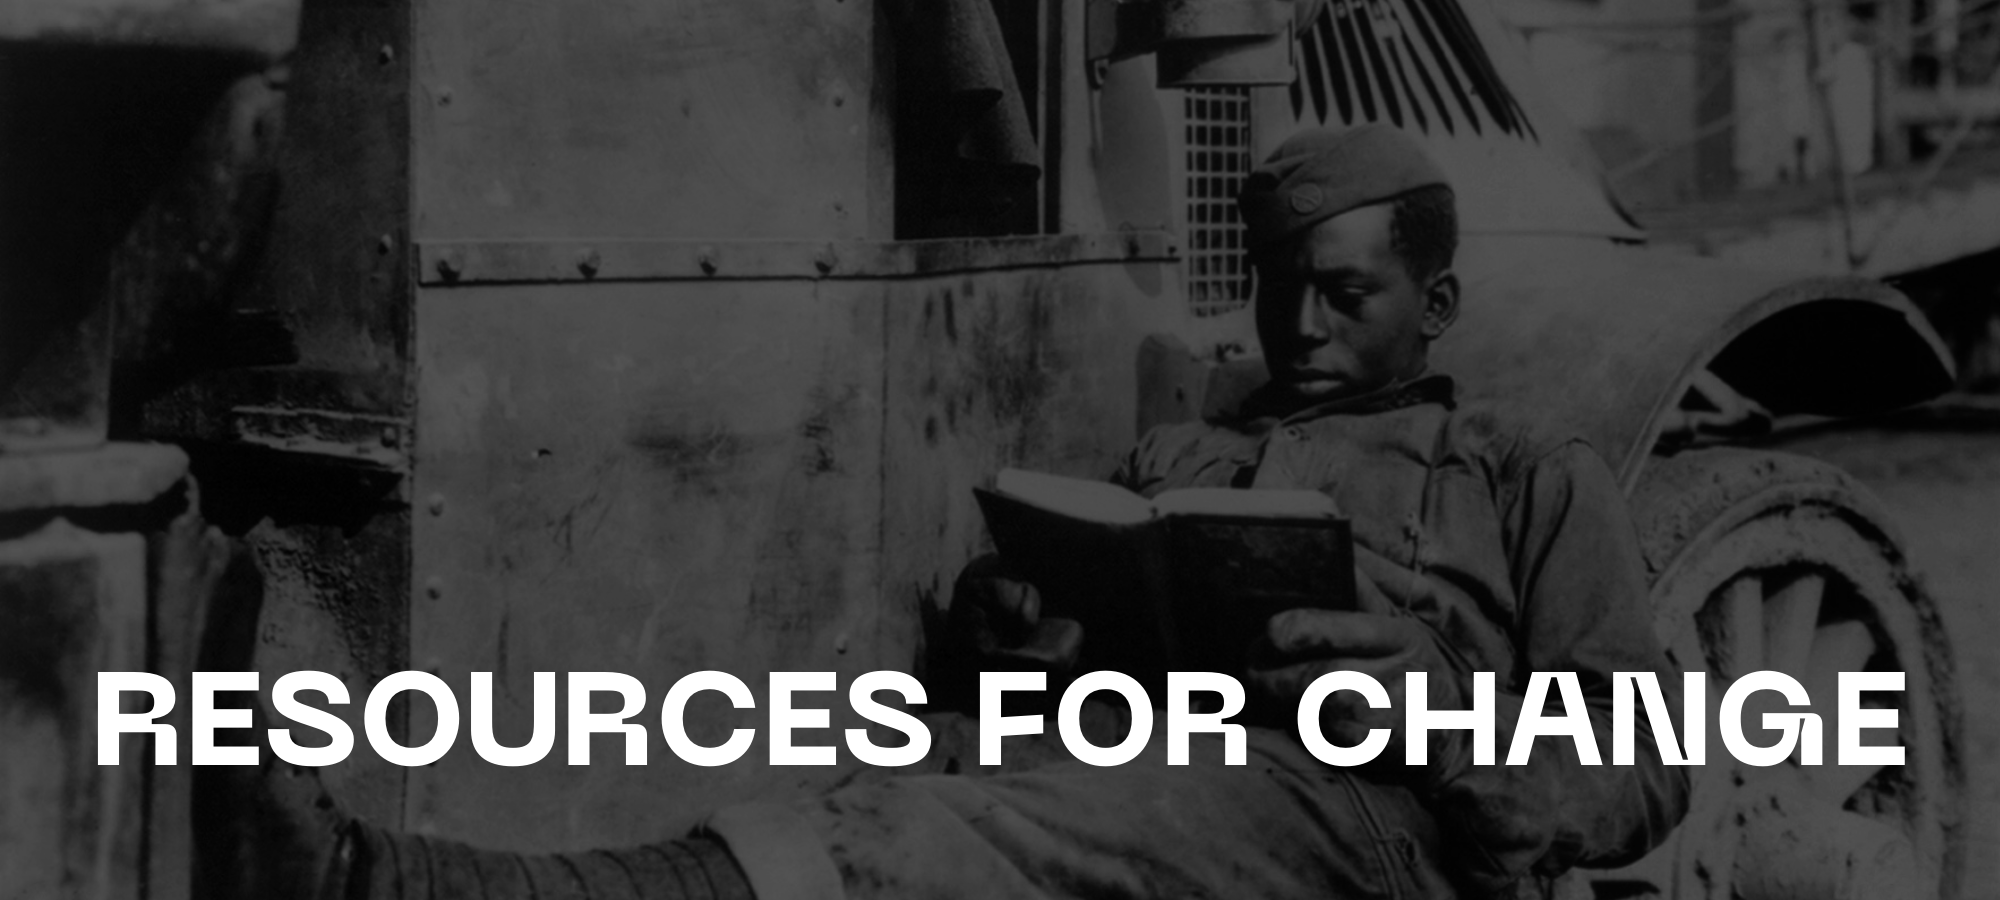 Resources For Change — Page Banner